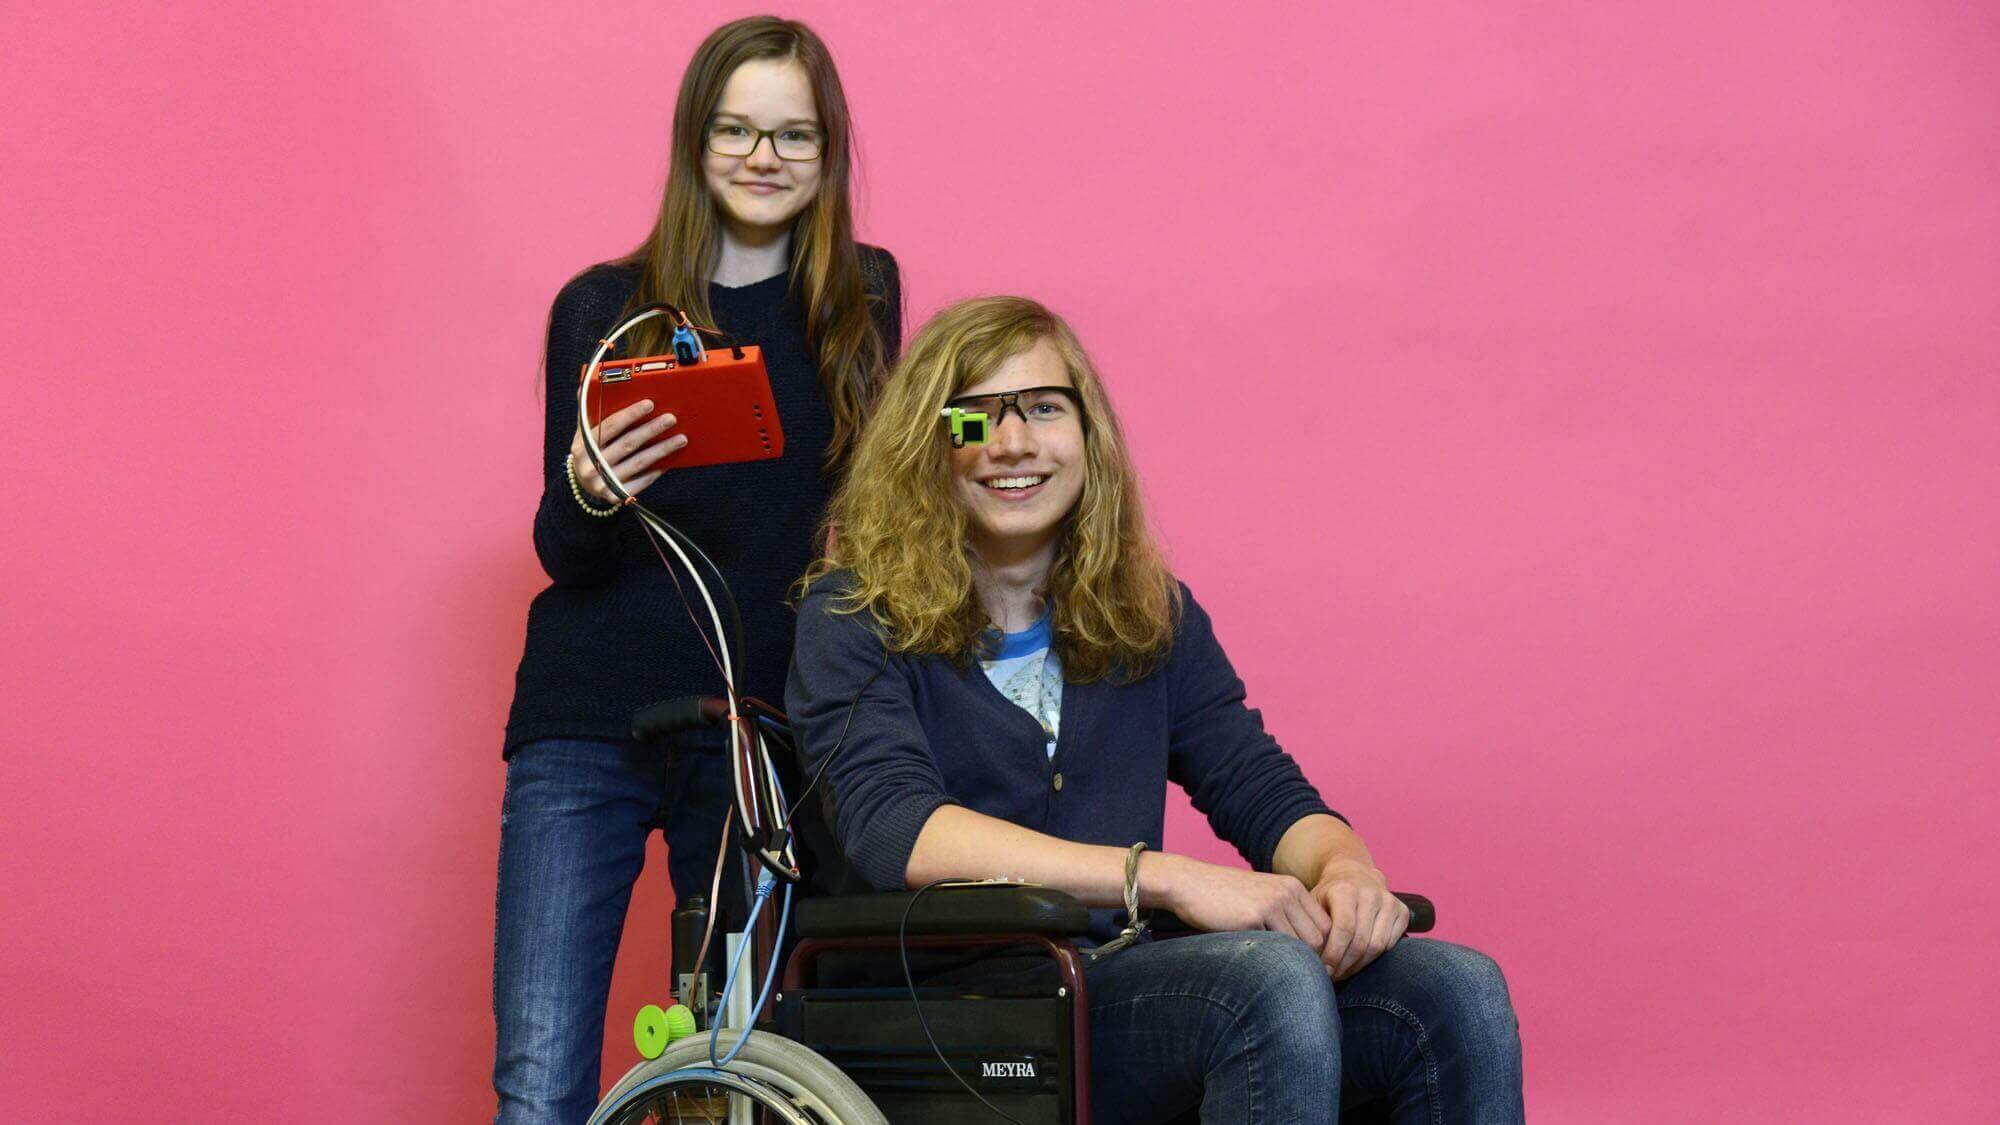 German Teens Build a Low-Cost Eye-Controlled Wheelchair | All3DP